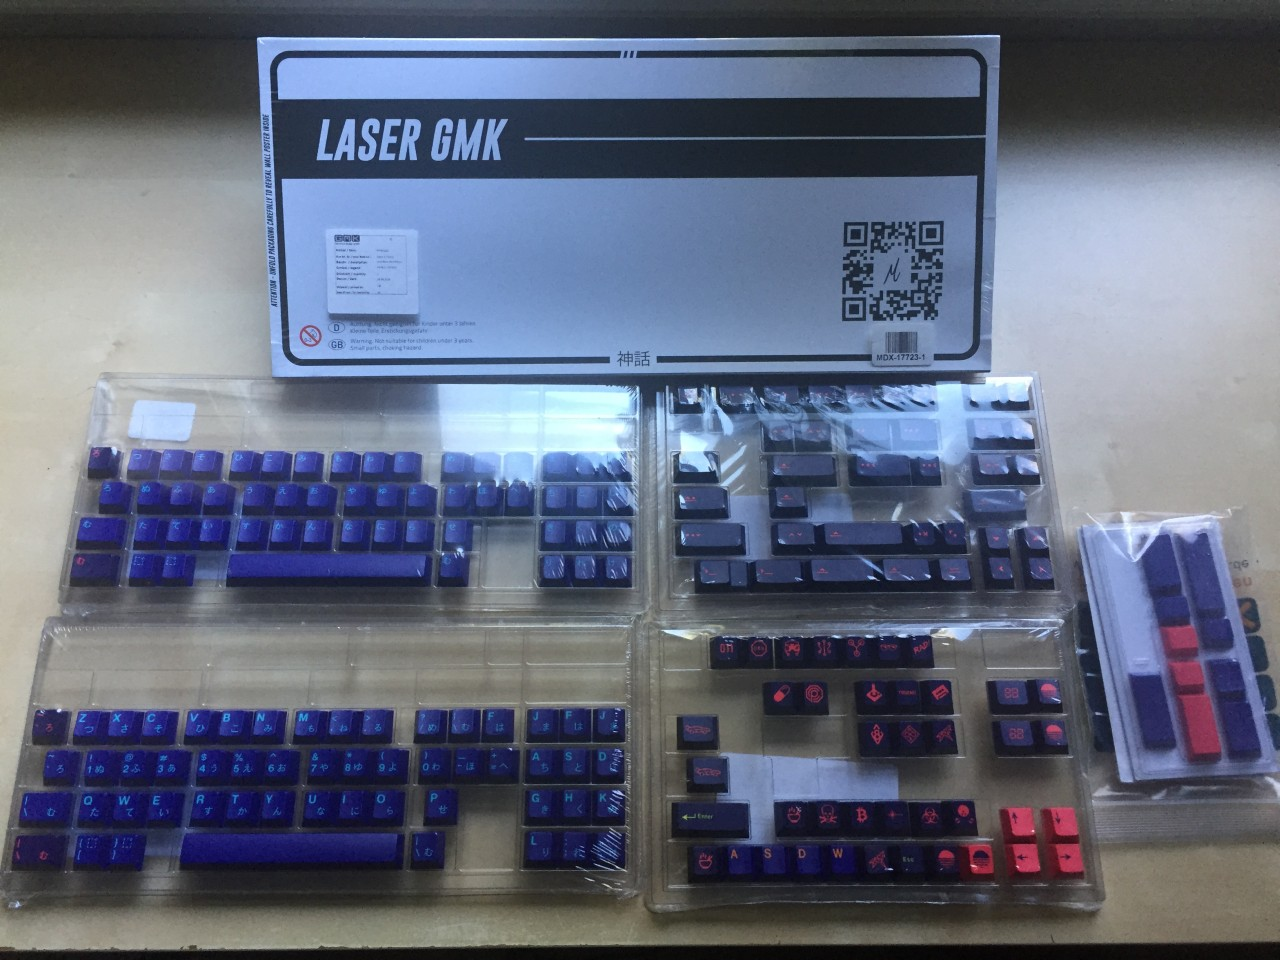 ...And try not to acquire more keycaps than you have keyboards